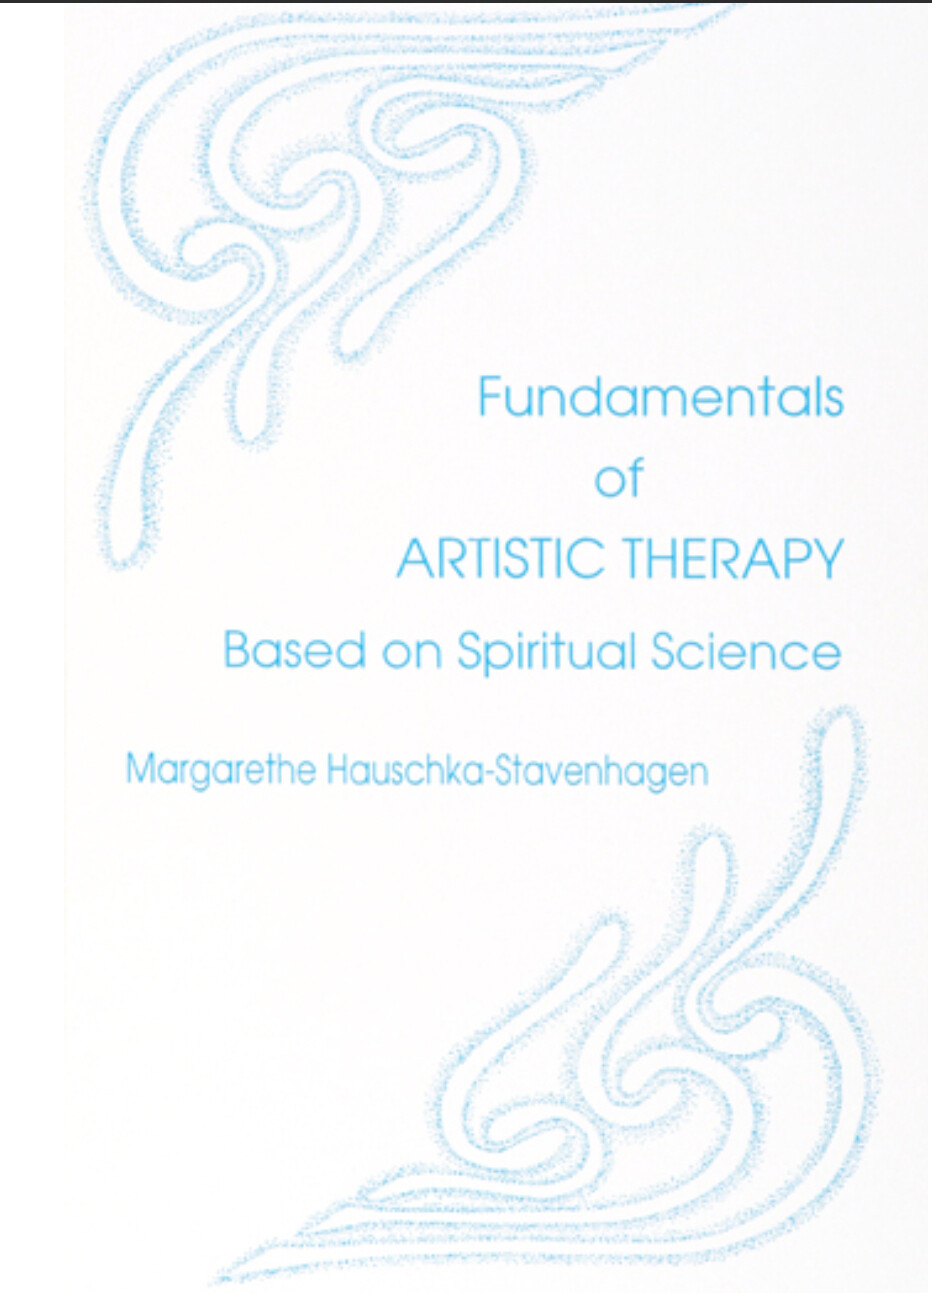 Fundamentals of Artistic Therapy Based on Spiritual Science B9595